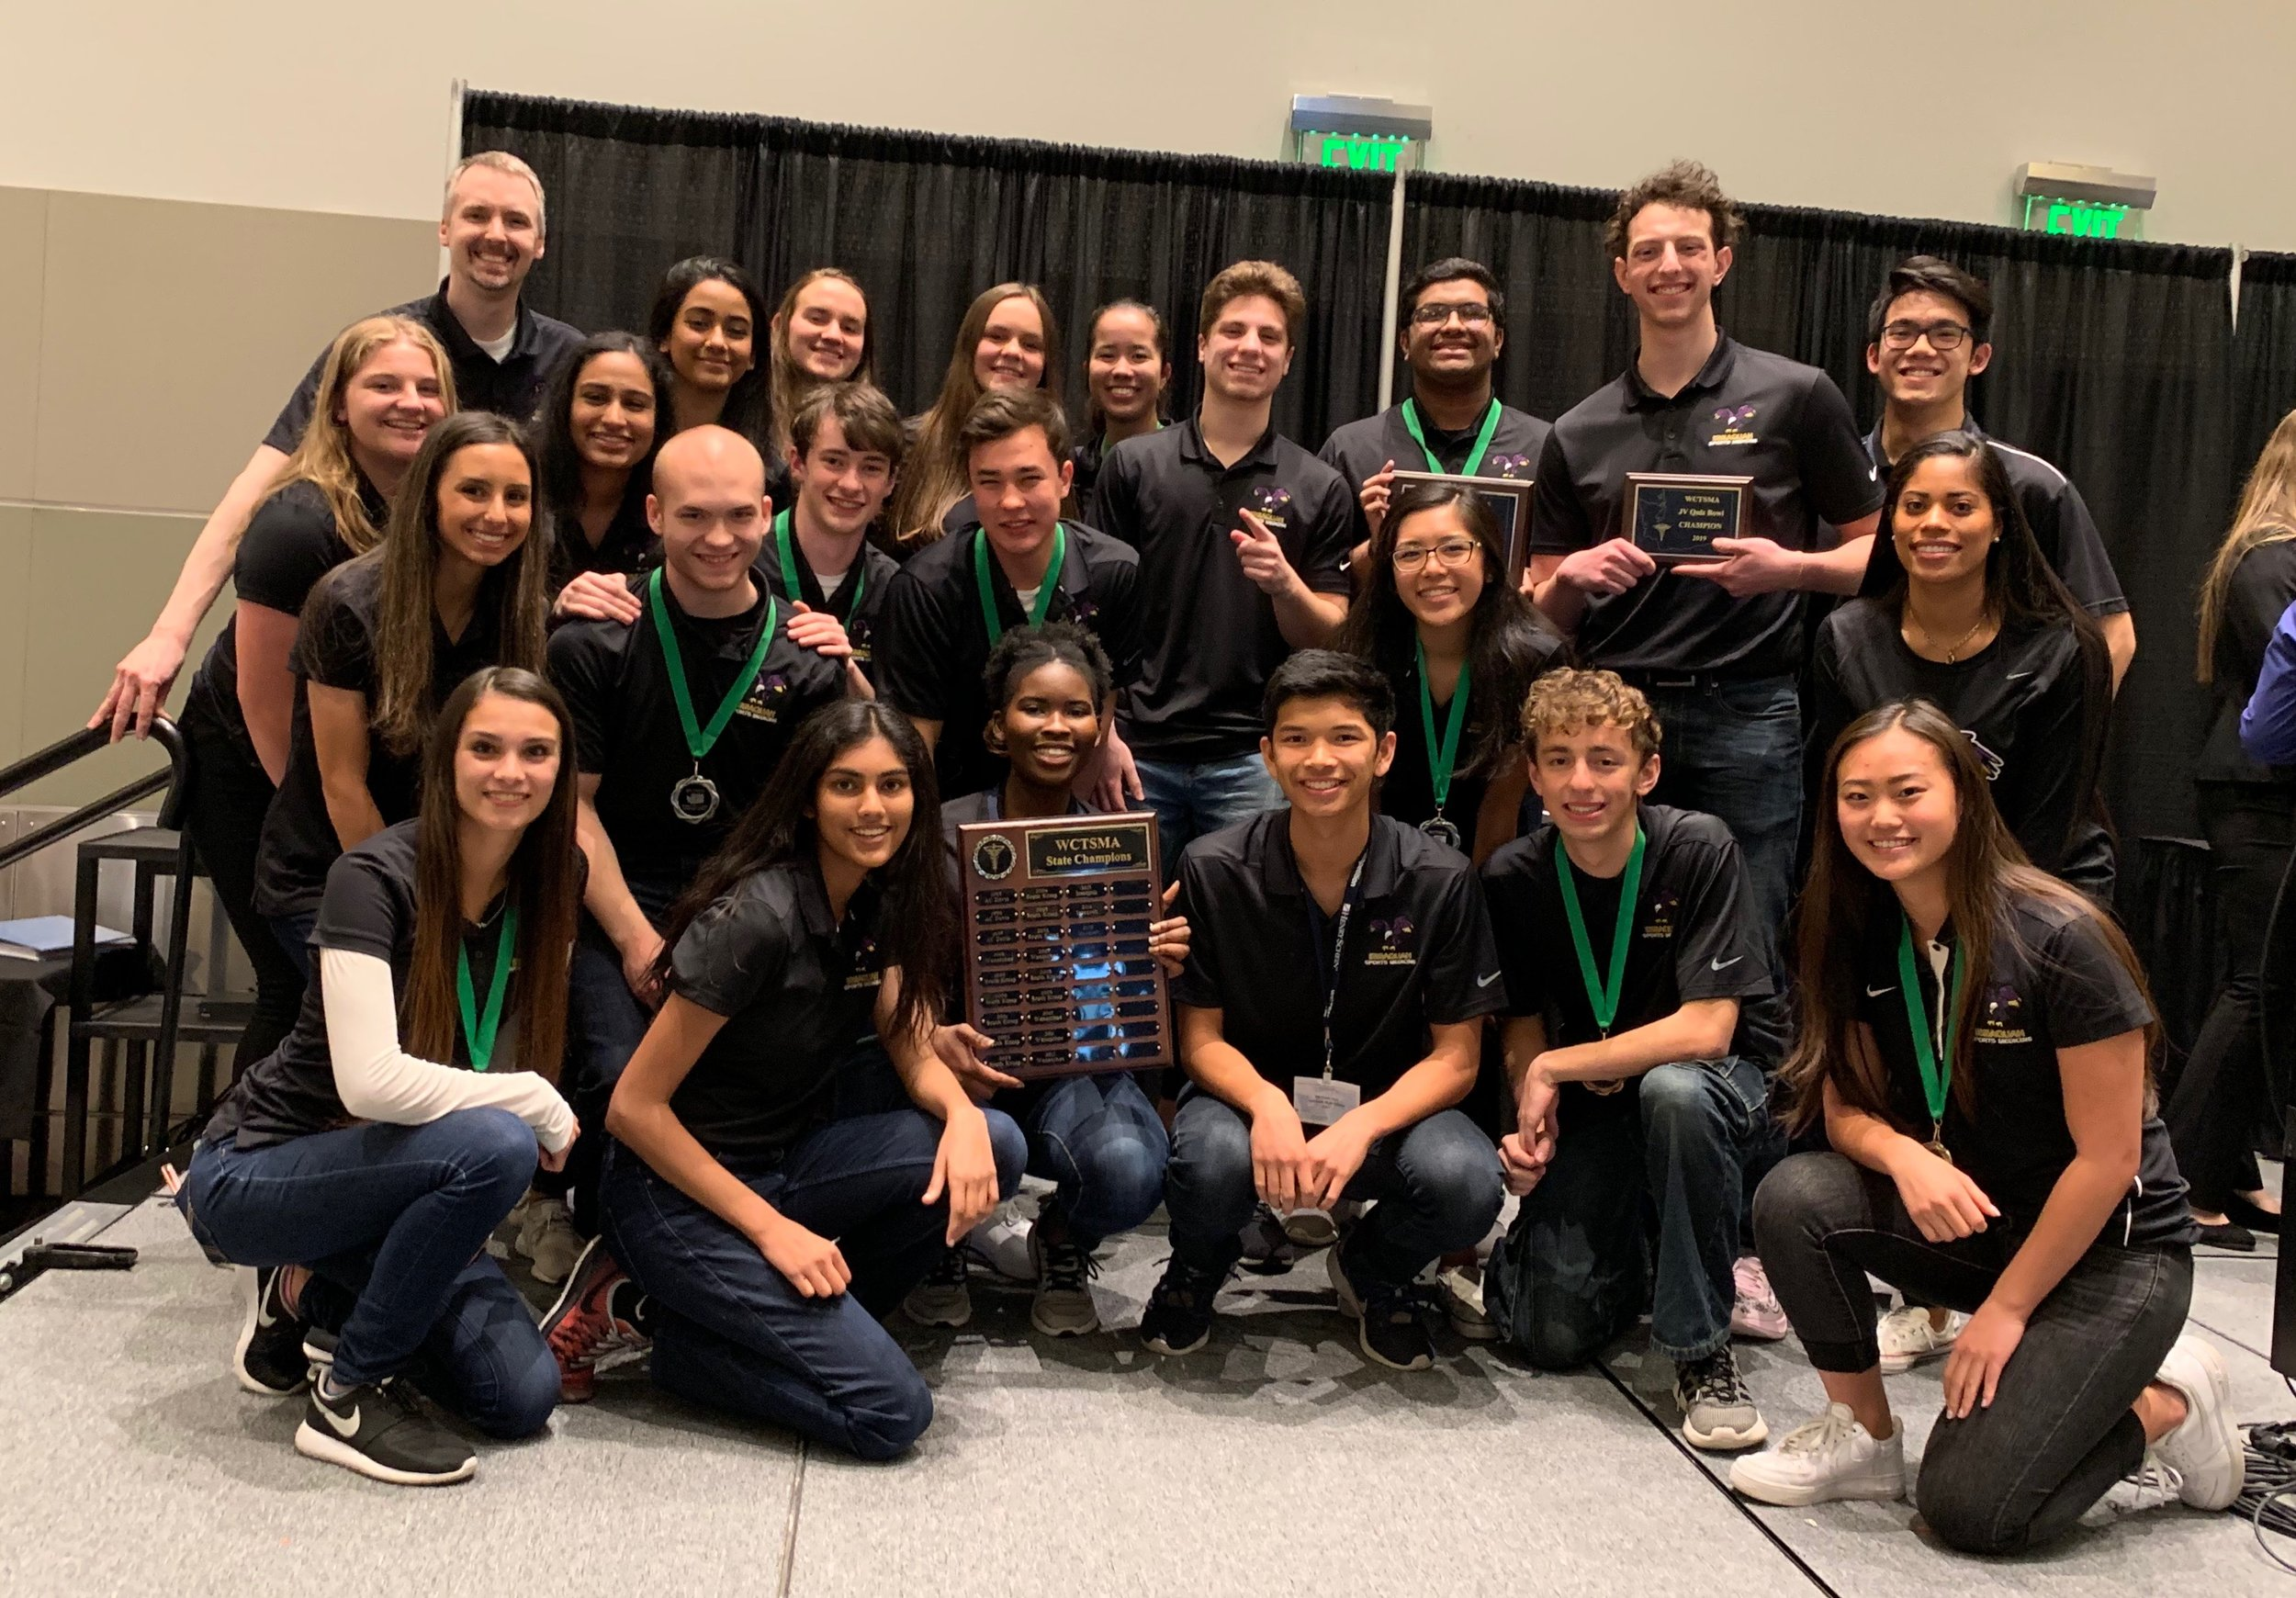 2019 Issaquah High School WCTSMA State Champions